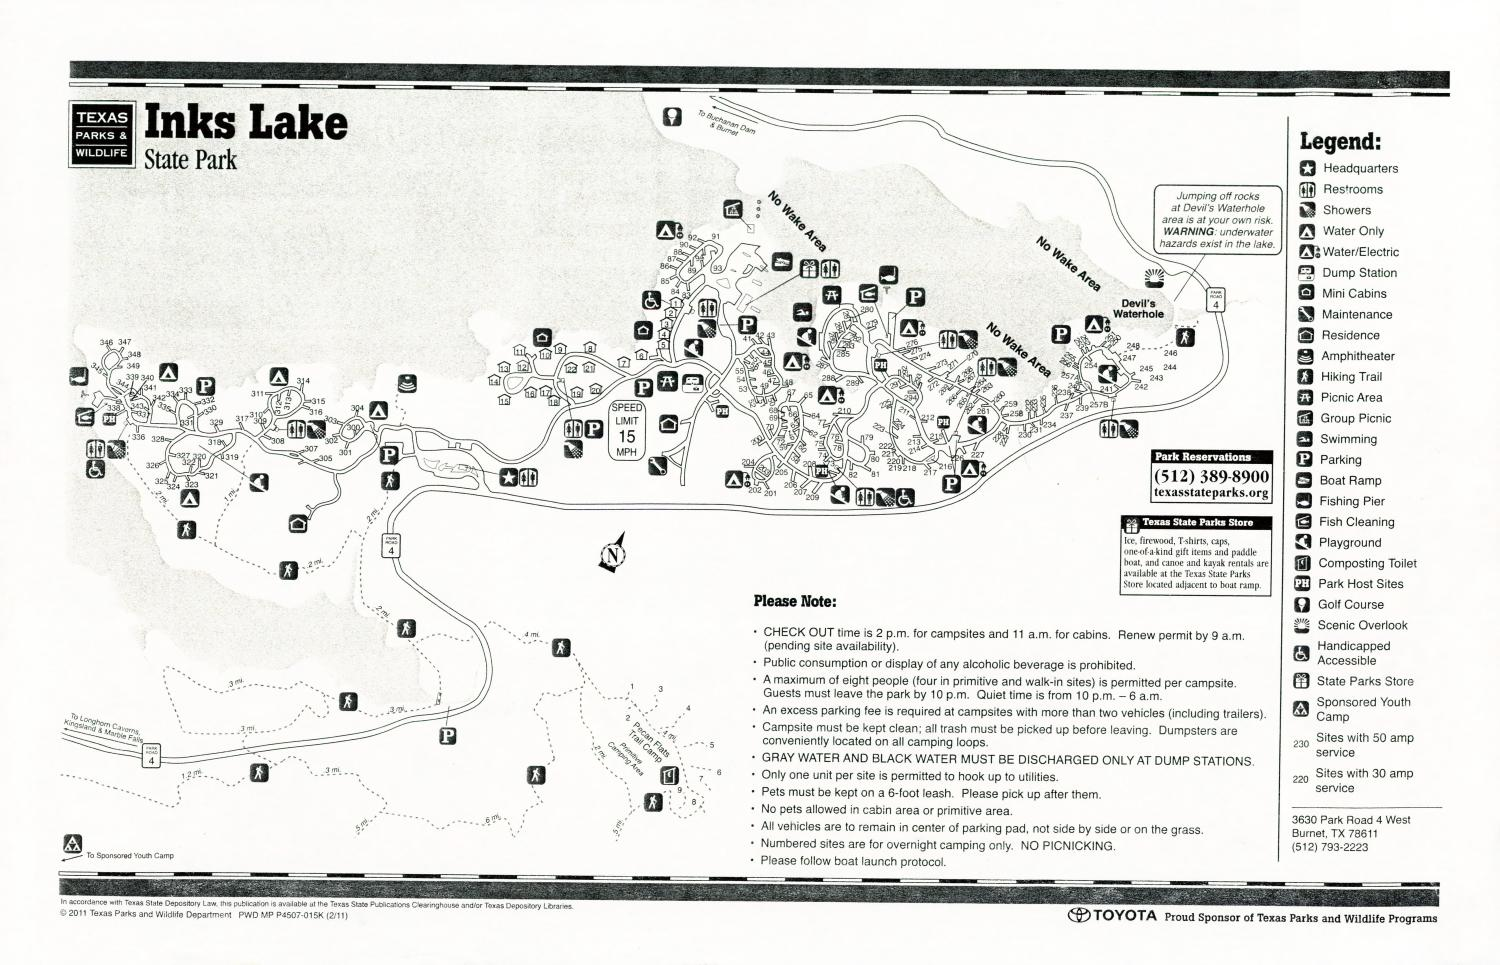 Inks Lake State Park, Map of the Inks Lake State Park outlining hiking trails and highlighting activities, facilities, and other features such as bathrooms, lodgings, water/electric, etc. It also contains general information for the park and for the Texas Parks and Wildlife Department. Additionally, there are various advertisements, including one with information about the Texas State Parks Pass.,